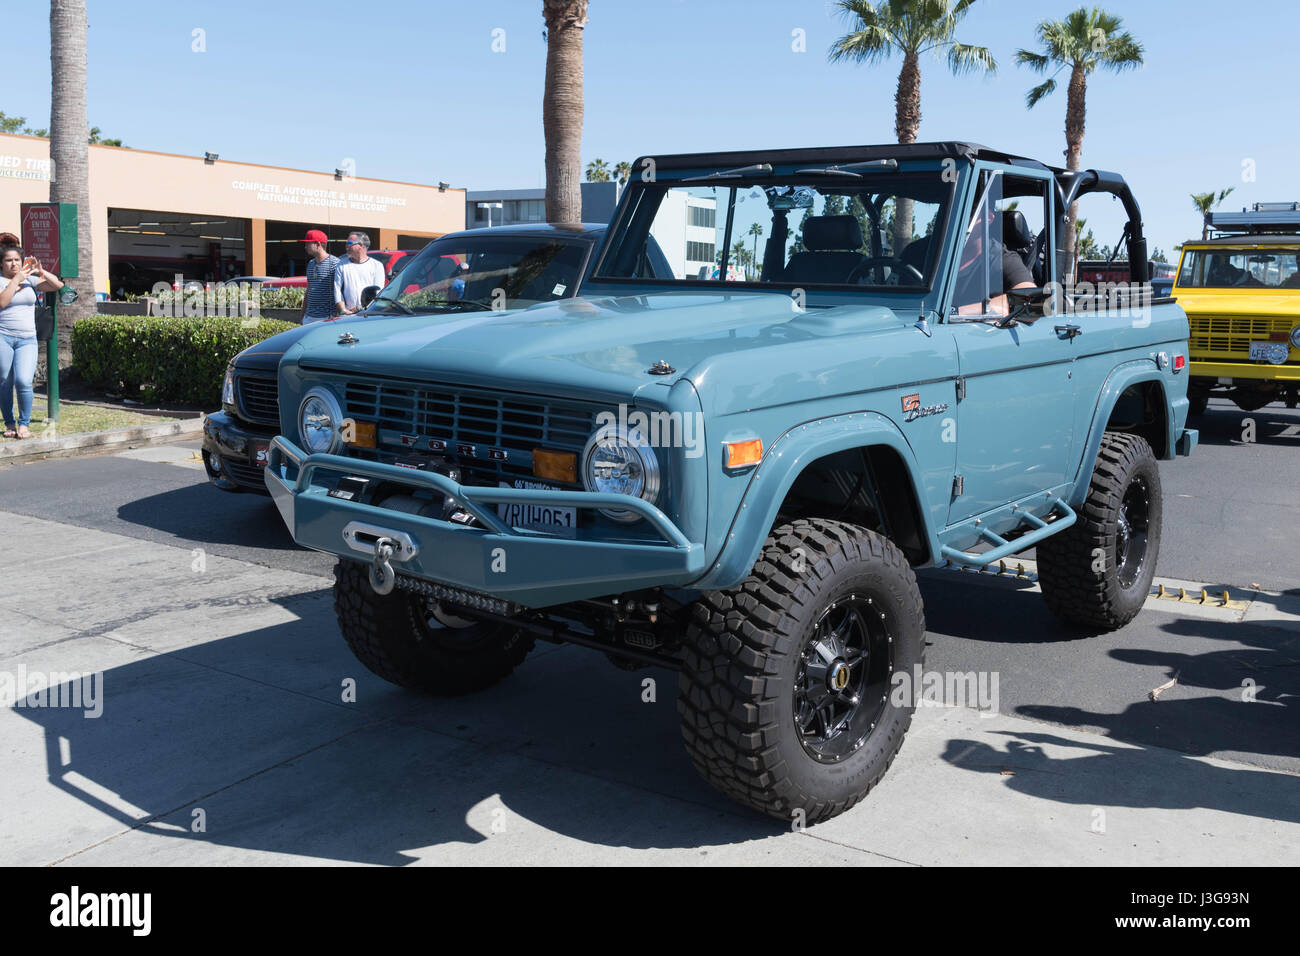 Buena park usa april 30 2017 ford bronco on display during the fabulous fords forever